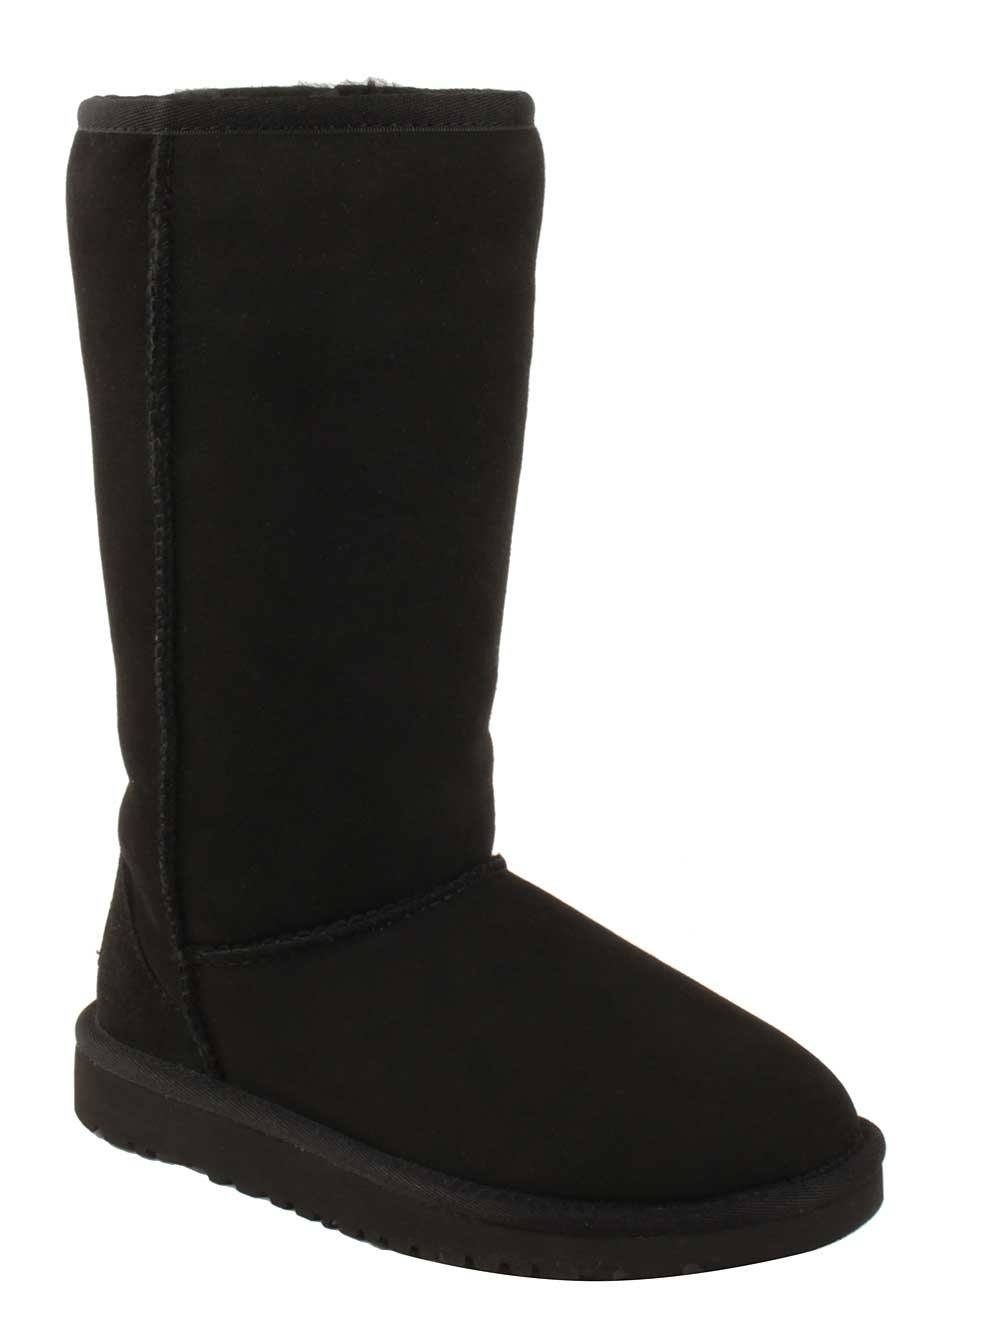 UGG Kids' Classic Tall ( Little / Big ) Black Boots 5229, US Size 3 by UGG